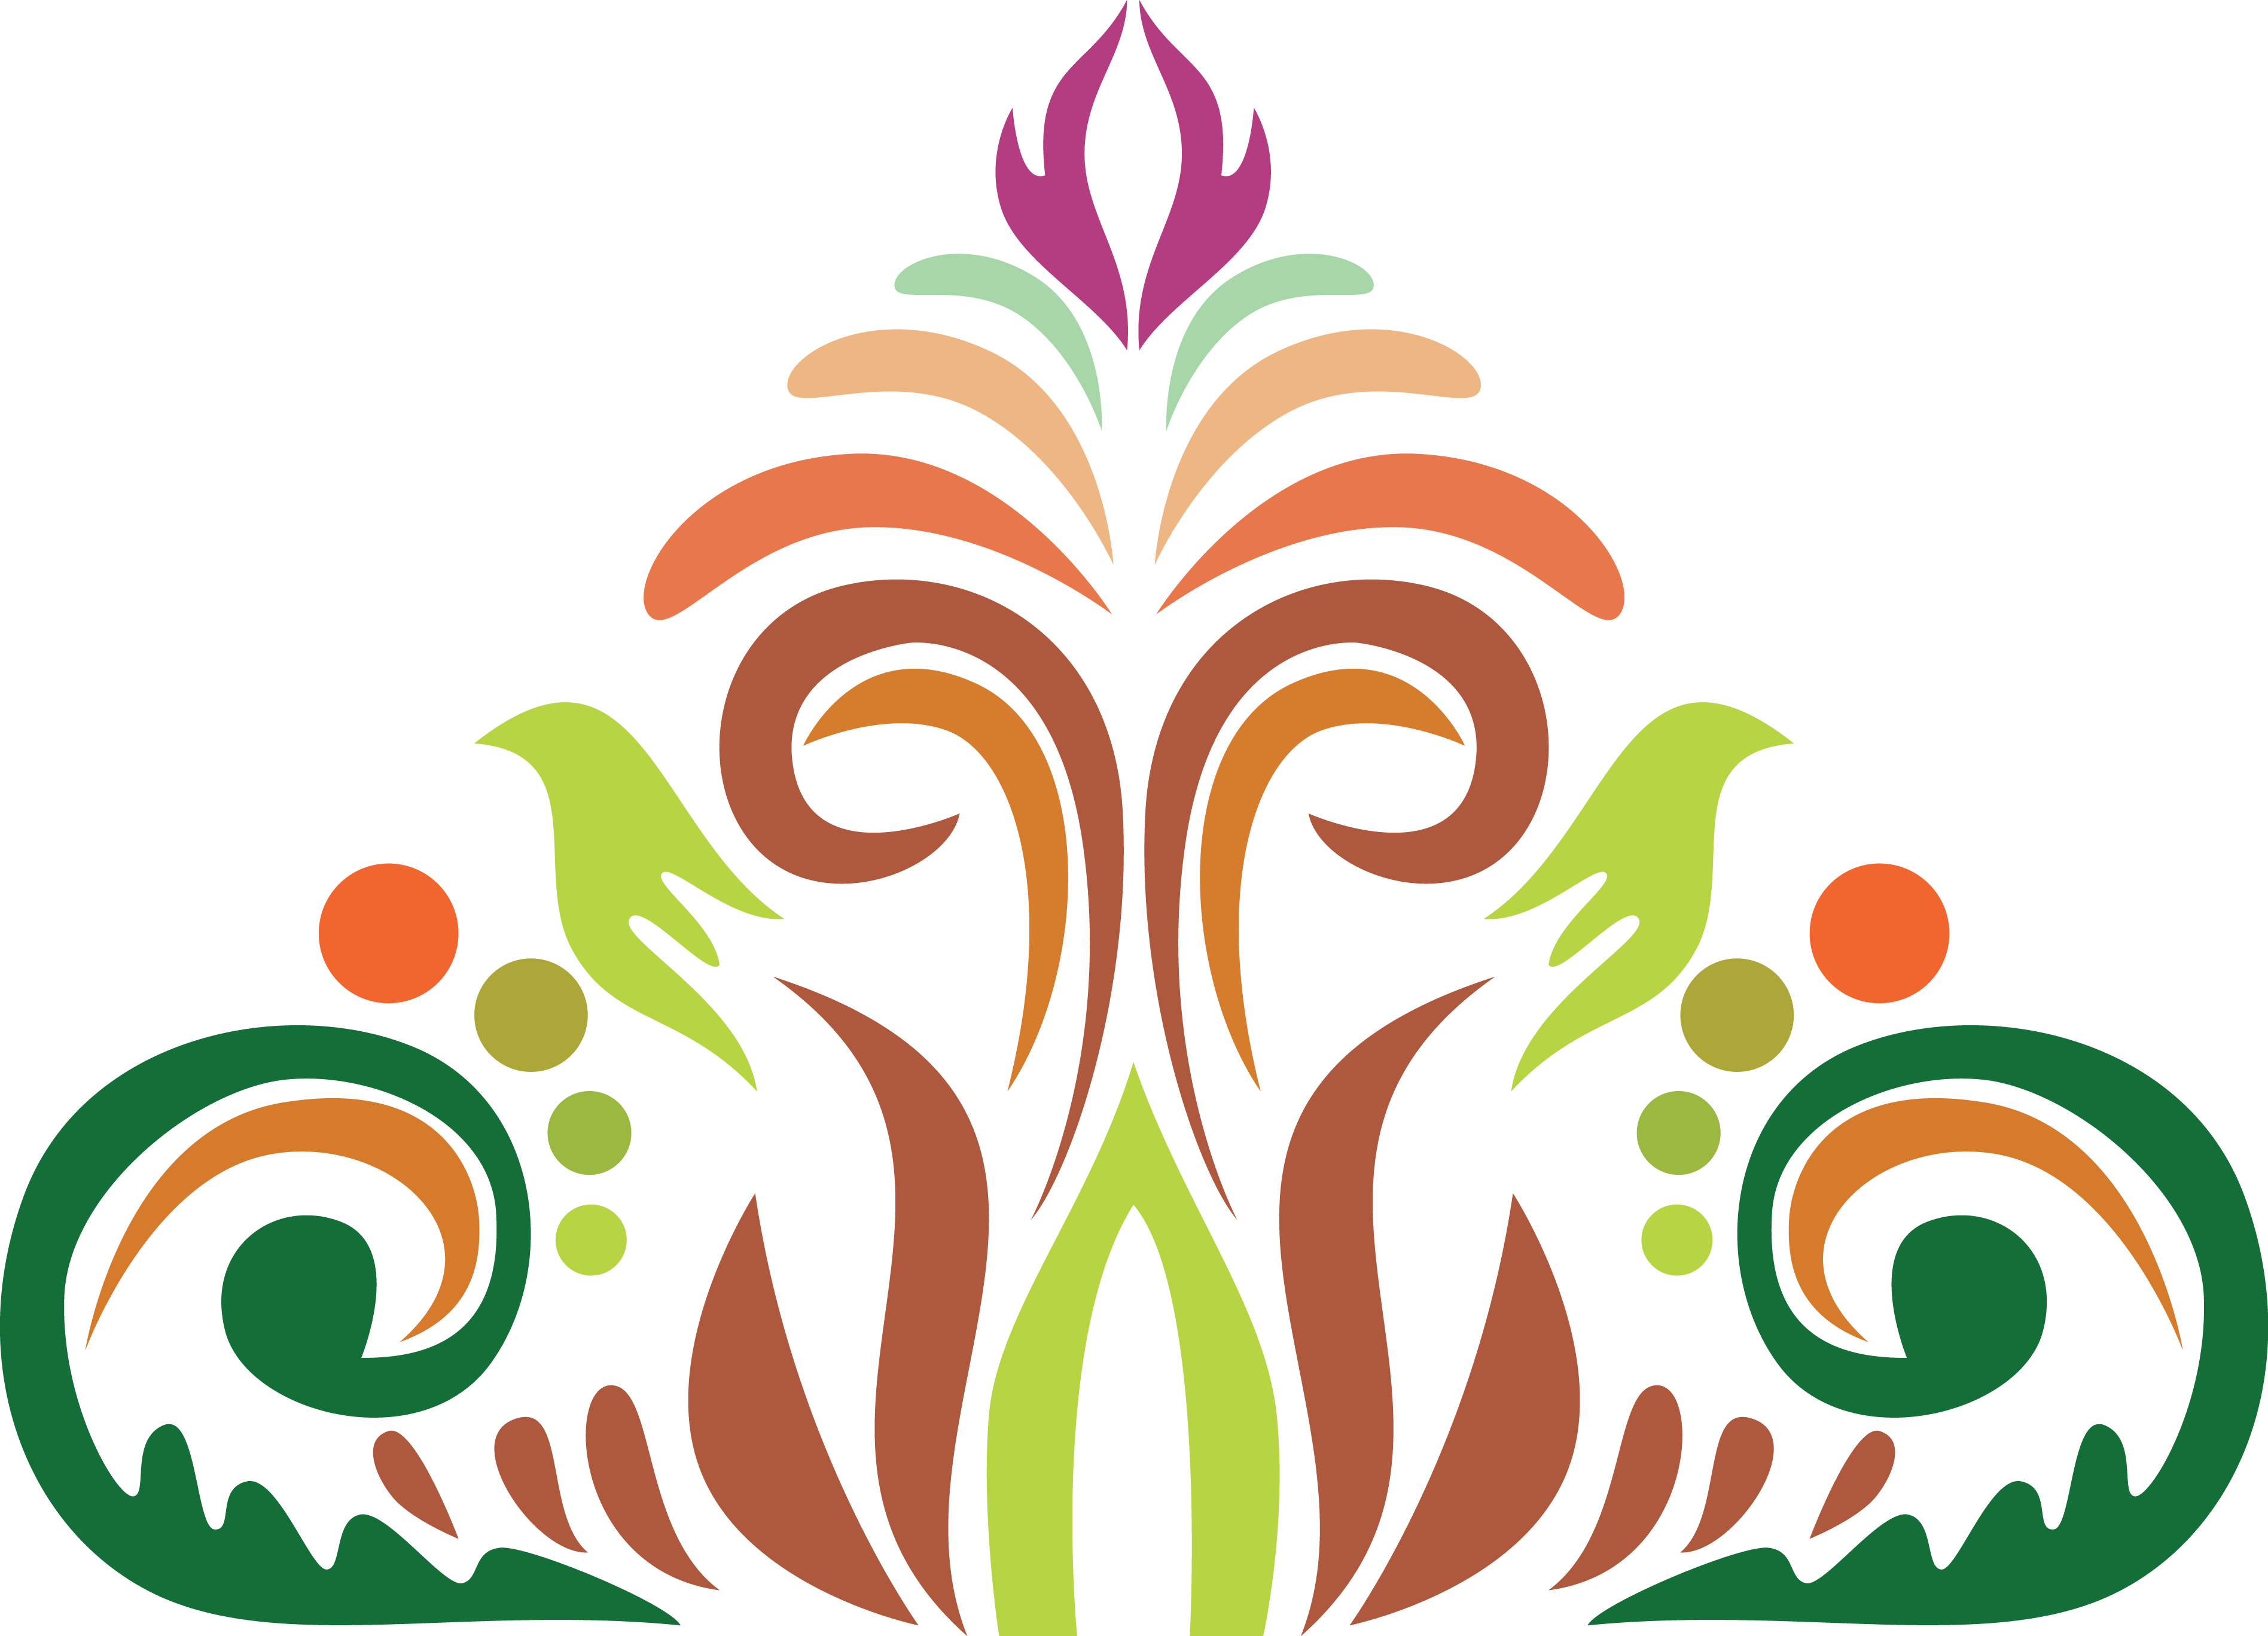 Decor vector alpona. Trinetra about free indian